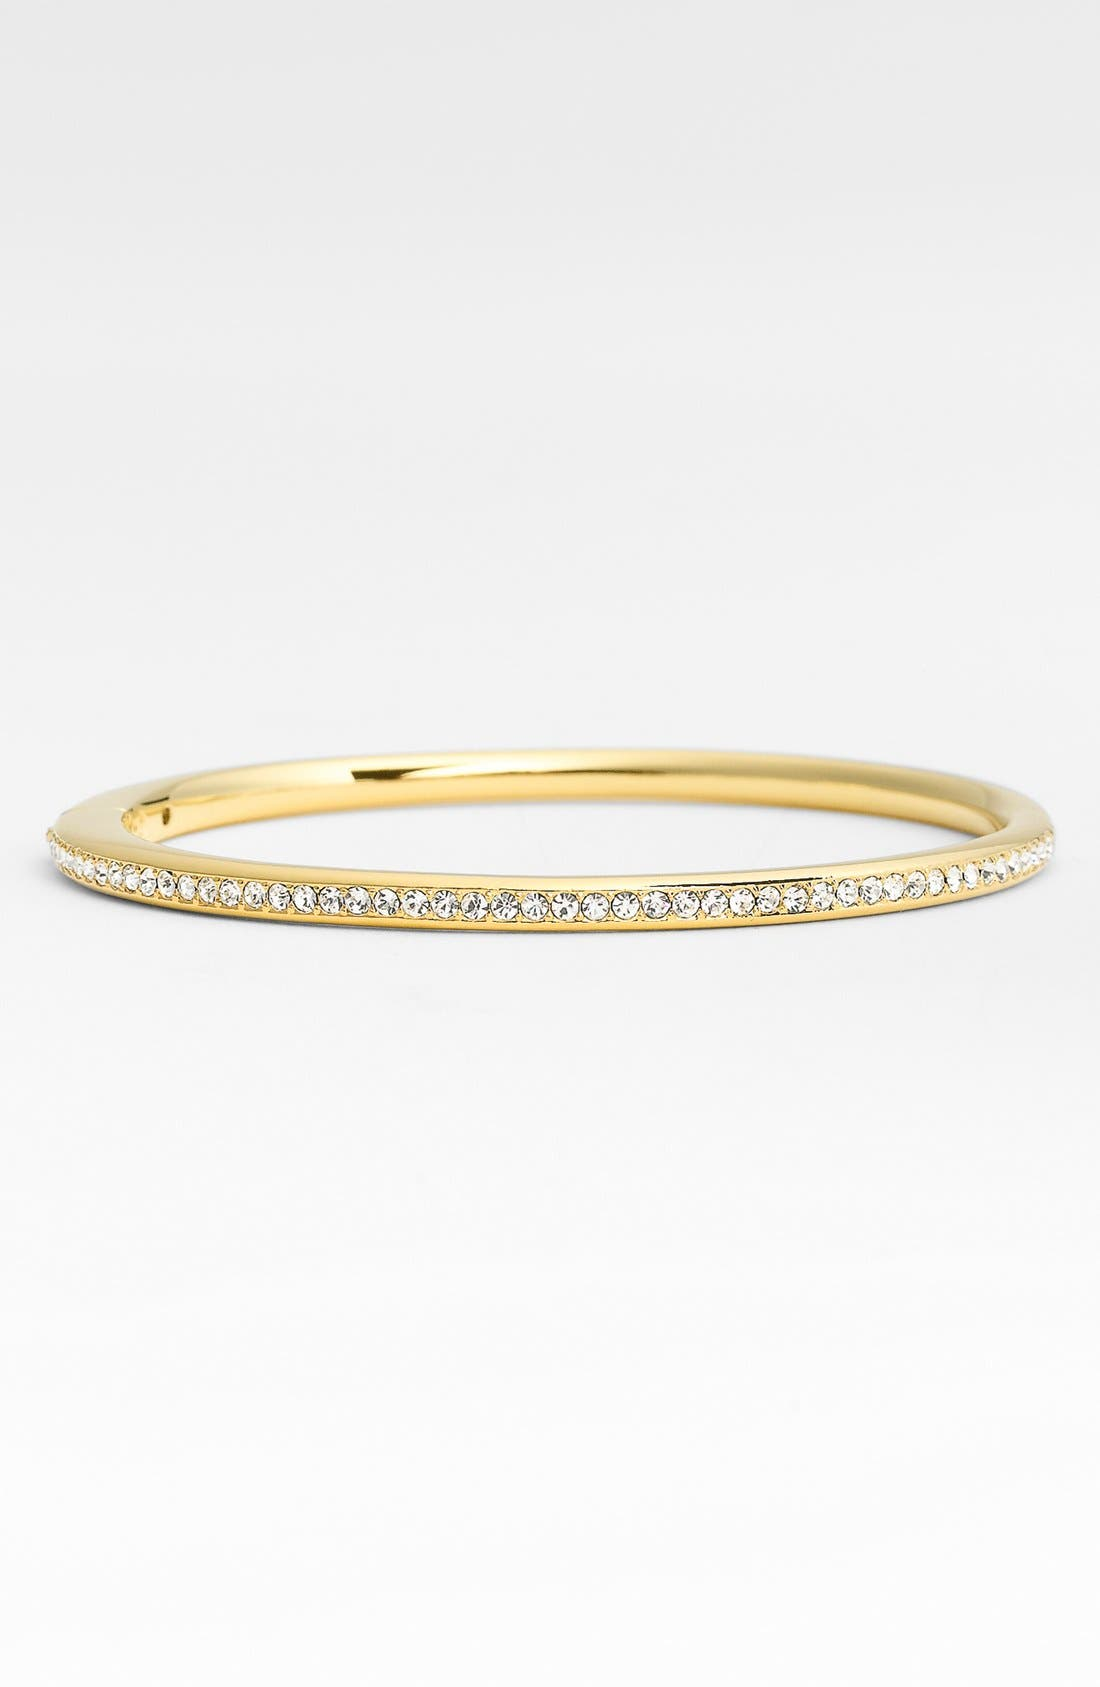 NADRI,                             Channel Set Crystal Hinged Bangle,                             Alternate thumbnail 2, color,                             GOLD/ CLEAR CRYSTAL